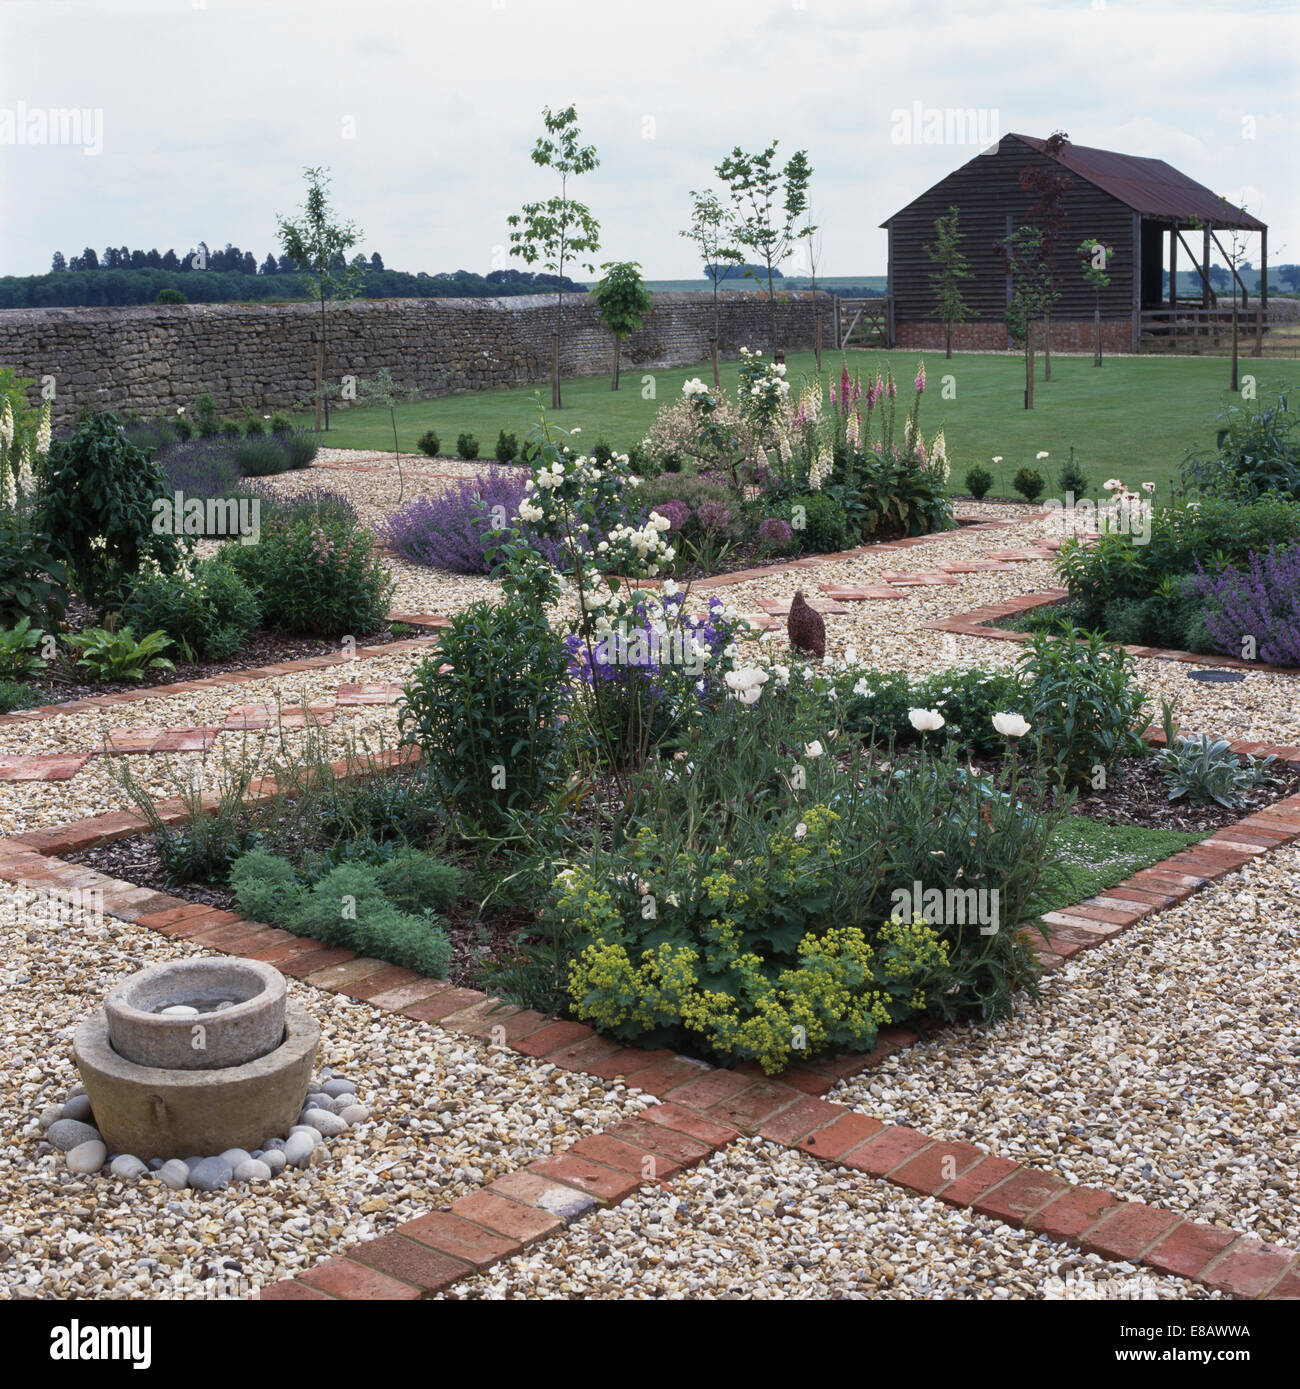 Brick Around Shed With Mulch And Flowers: Flower Beds In Gravel Garden With Brick-paved Edging Stock